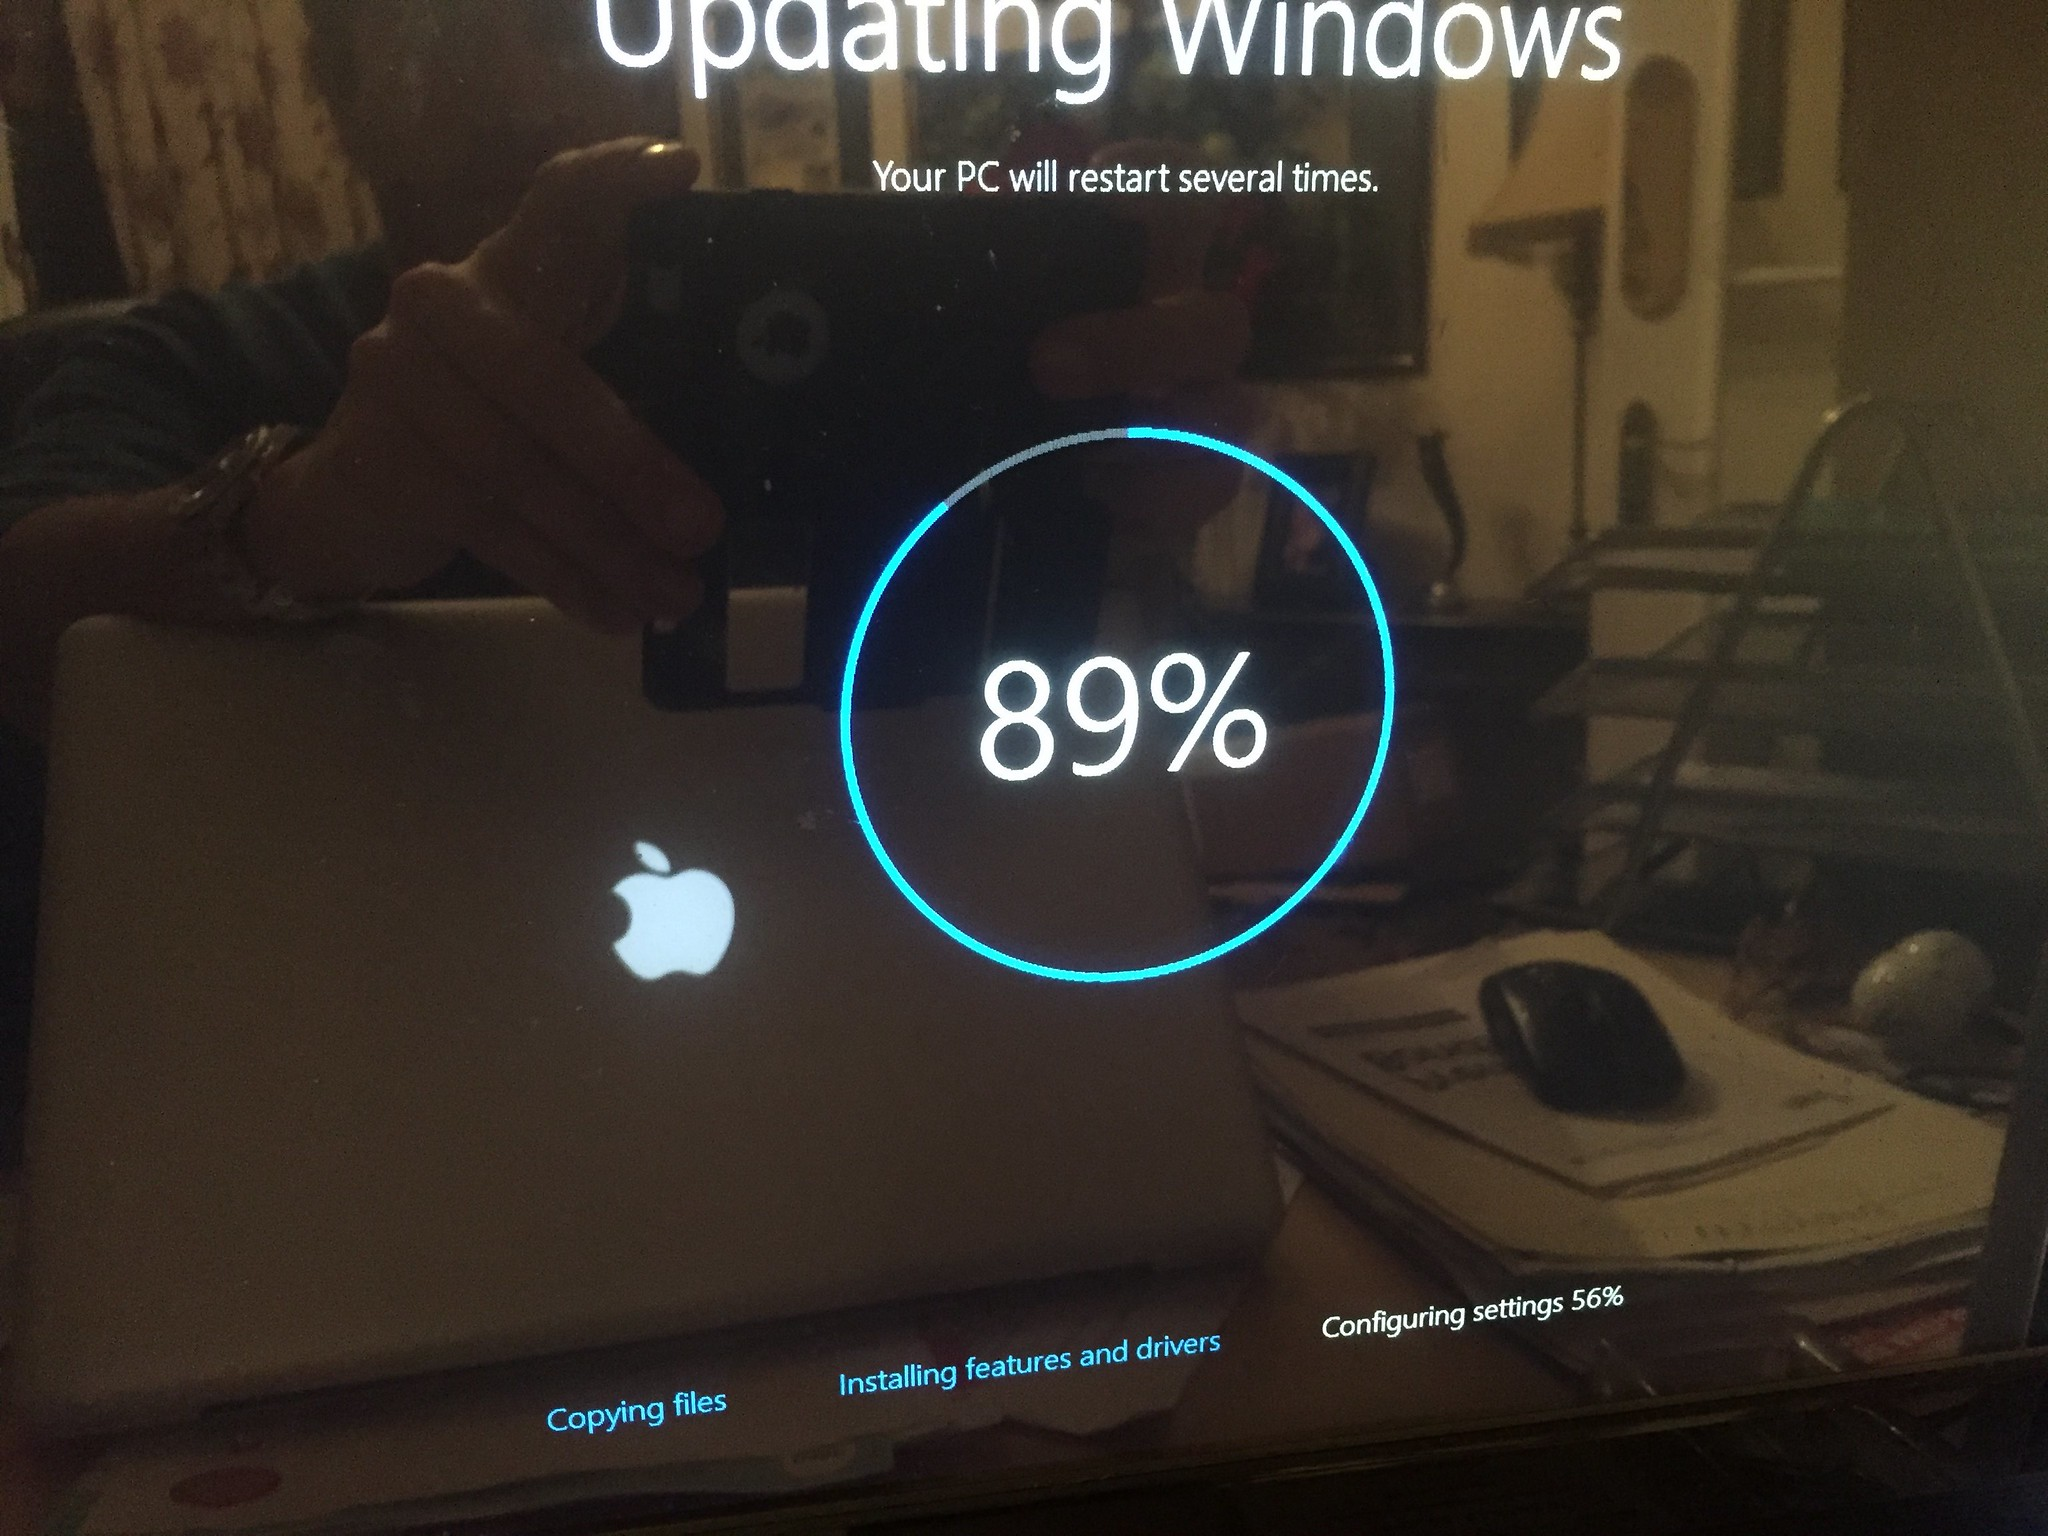 Windows 10 update failure | Overclockers UK Forums